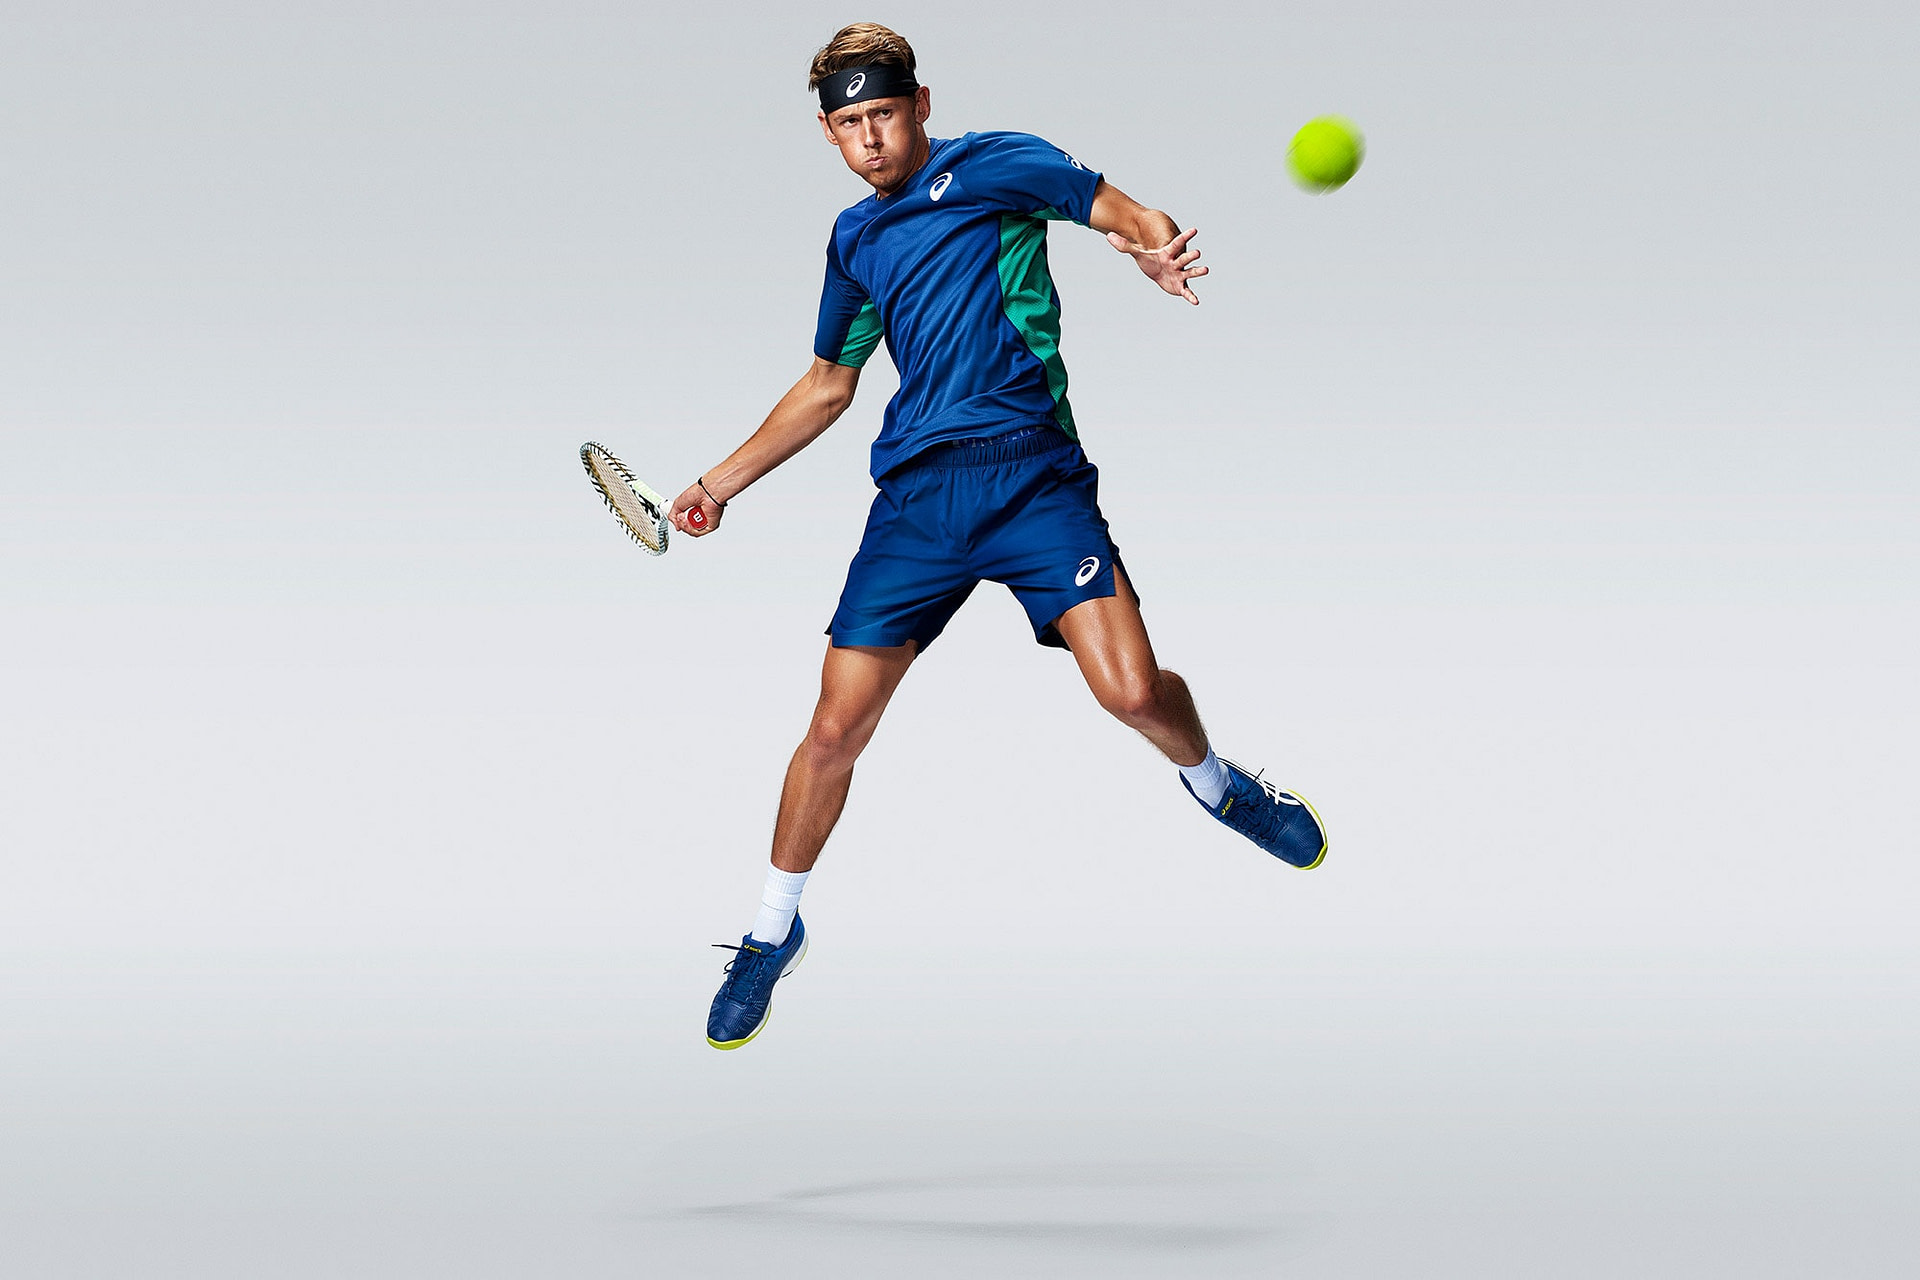 professional tennis player Alex de minaur wearing asics solution speed shoe for 2020 gloabal product launch shot in studio in Japan by Smith and Daniels